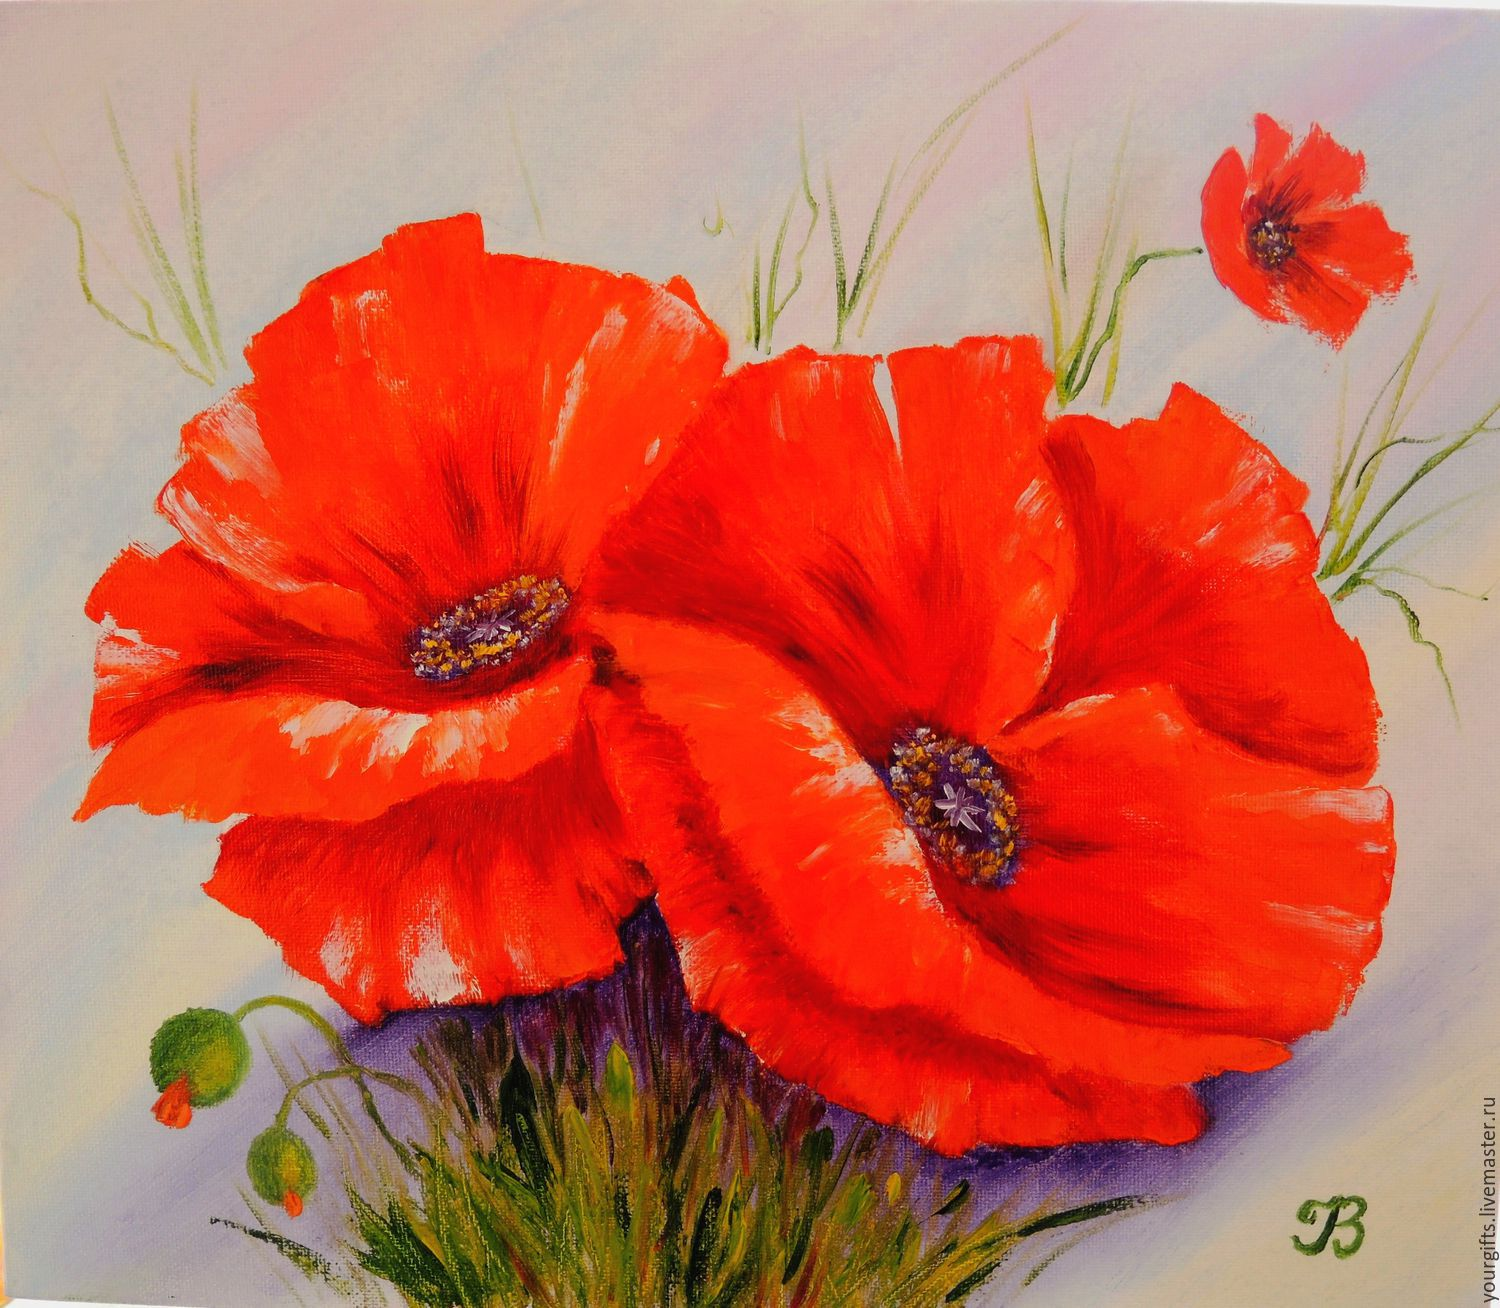 Oil painting flower flowers ideas for review for Bright flower painting